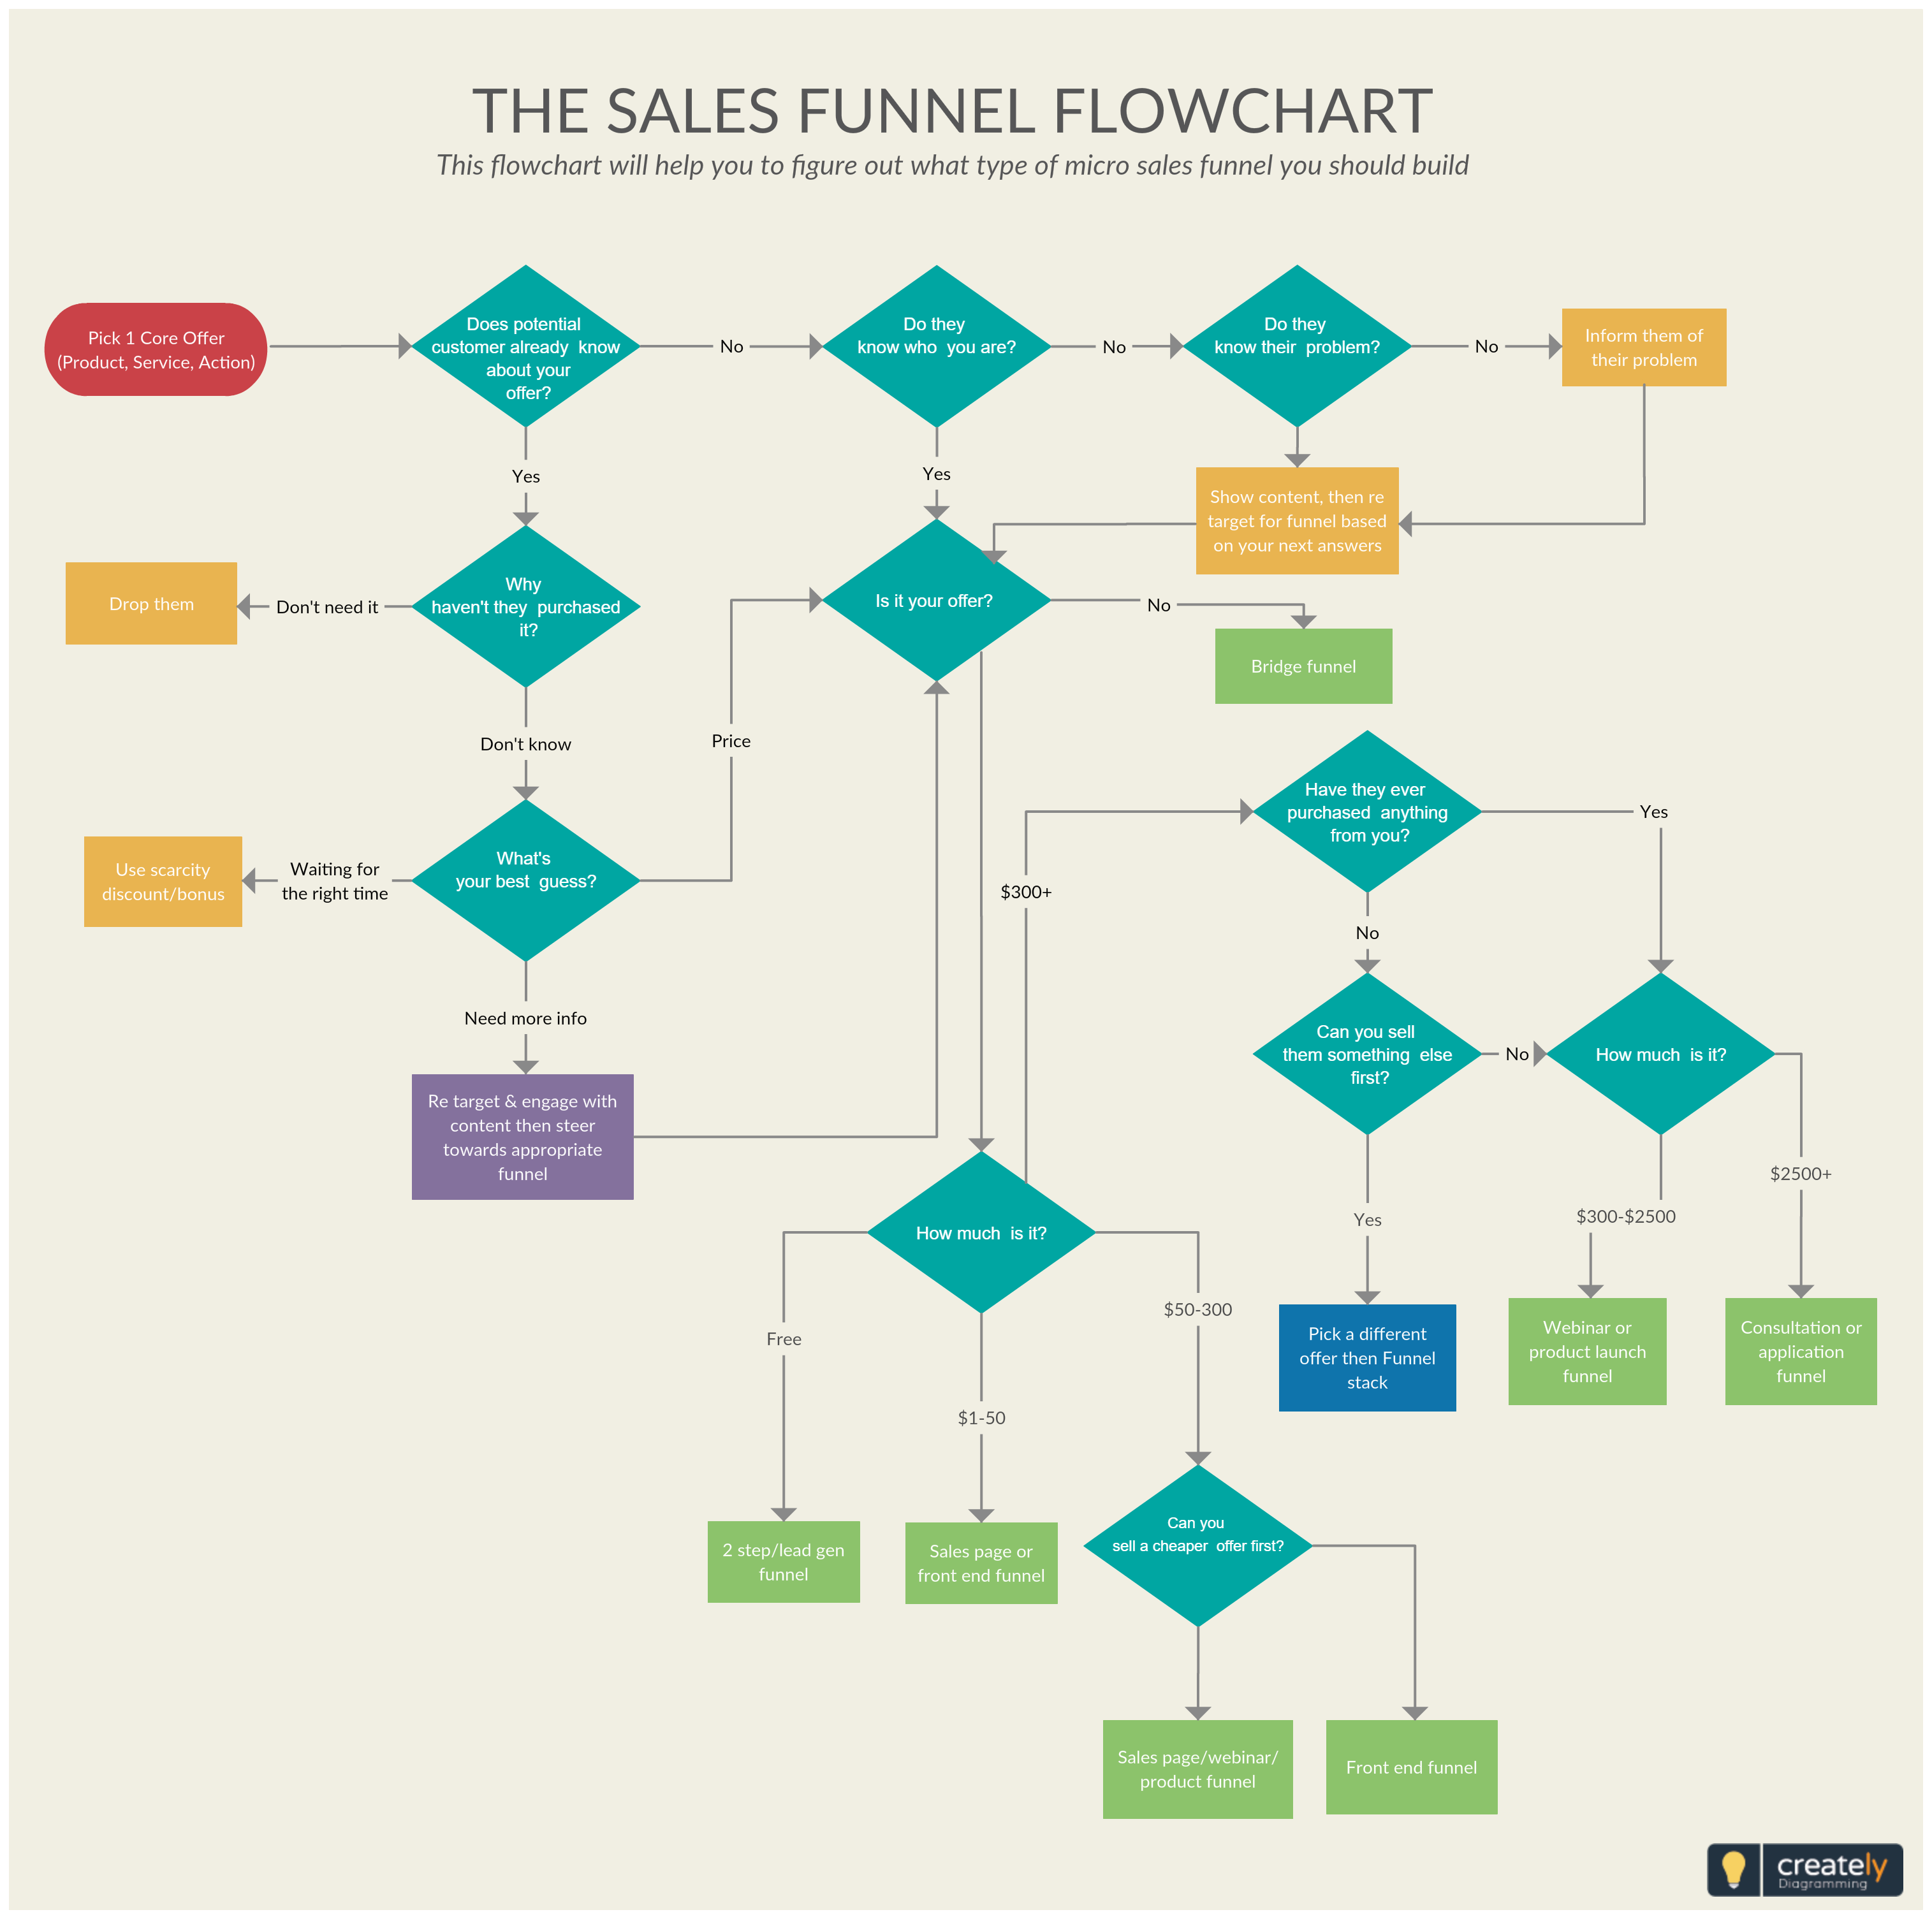 Sales Funnel Flowchart Illustrates The Steps In A Sales Process From Lead Generation To Completed Sale You Ca Flow Chart Design Flow Chart Flow Chart Template